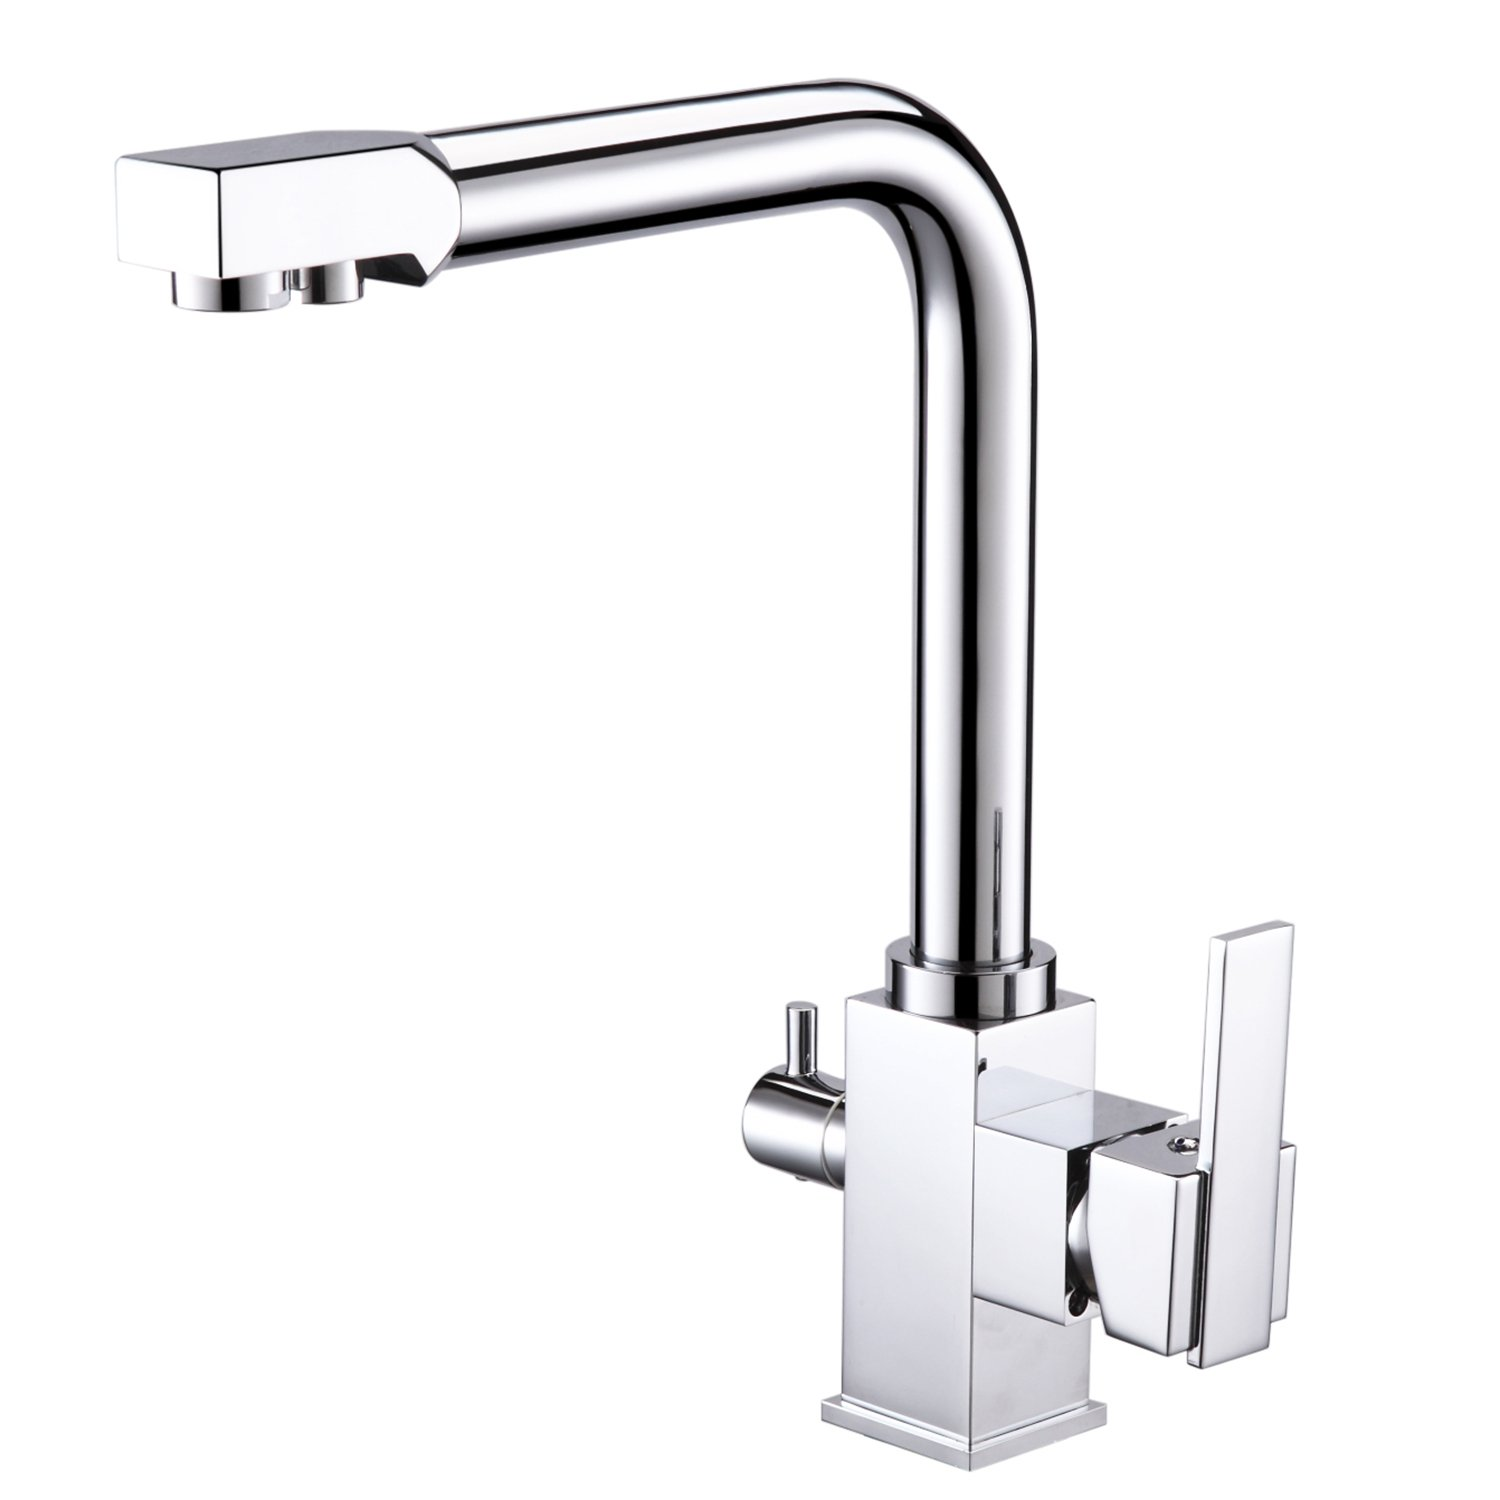 [Drinking Water Kitchen Tap] Hapilife Commercial Chrome Solid Brass Single  Hole Double Handles 3 Way Water Filter Square Swivel Spout Sink Mixer Tap:  ...